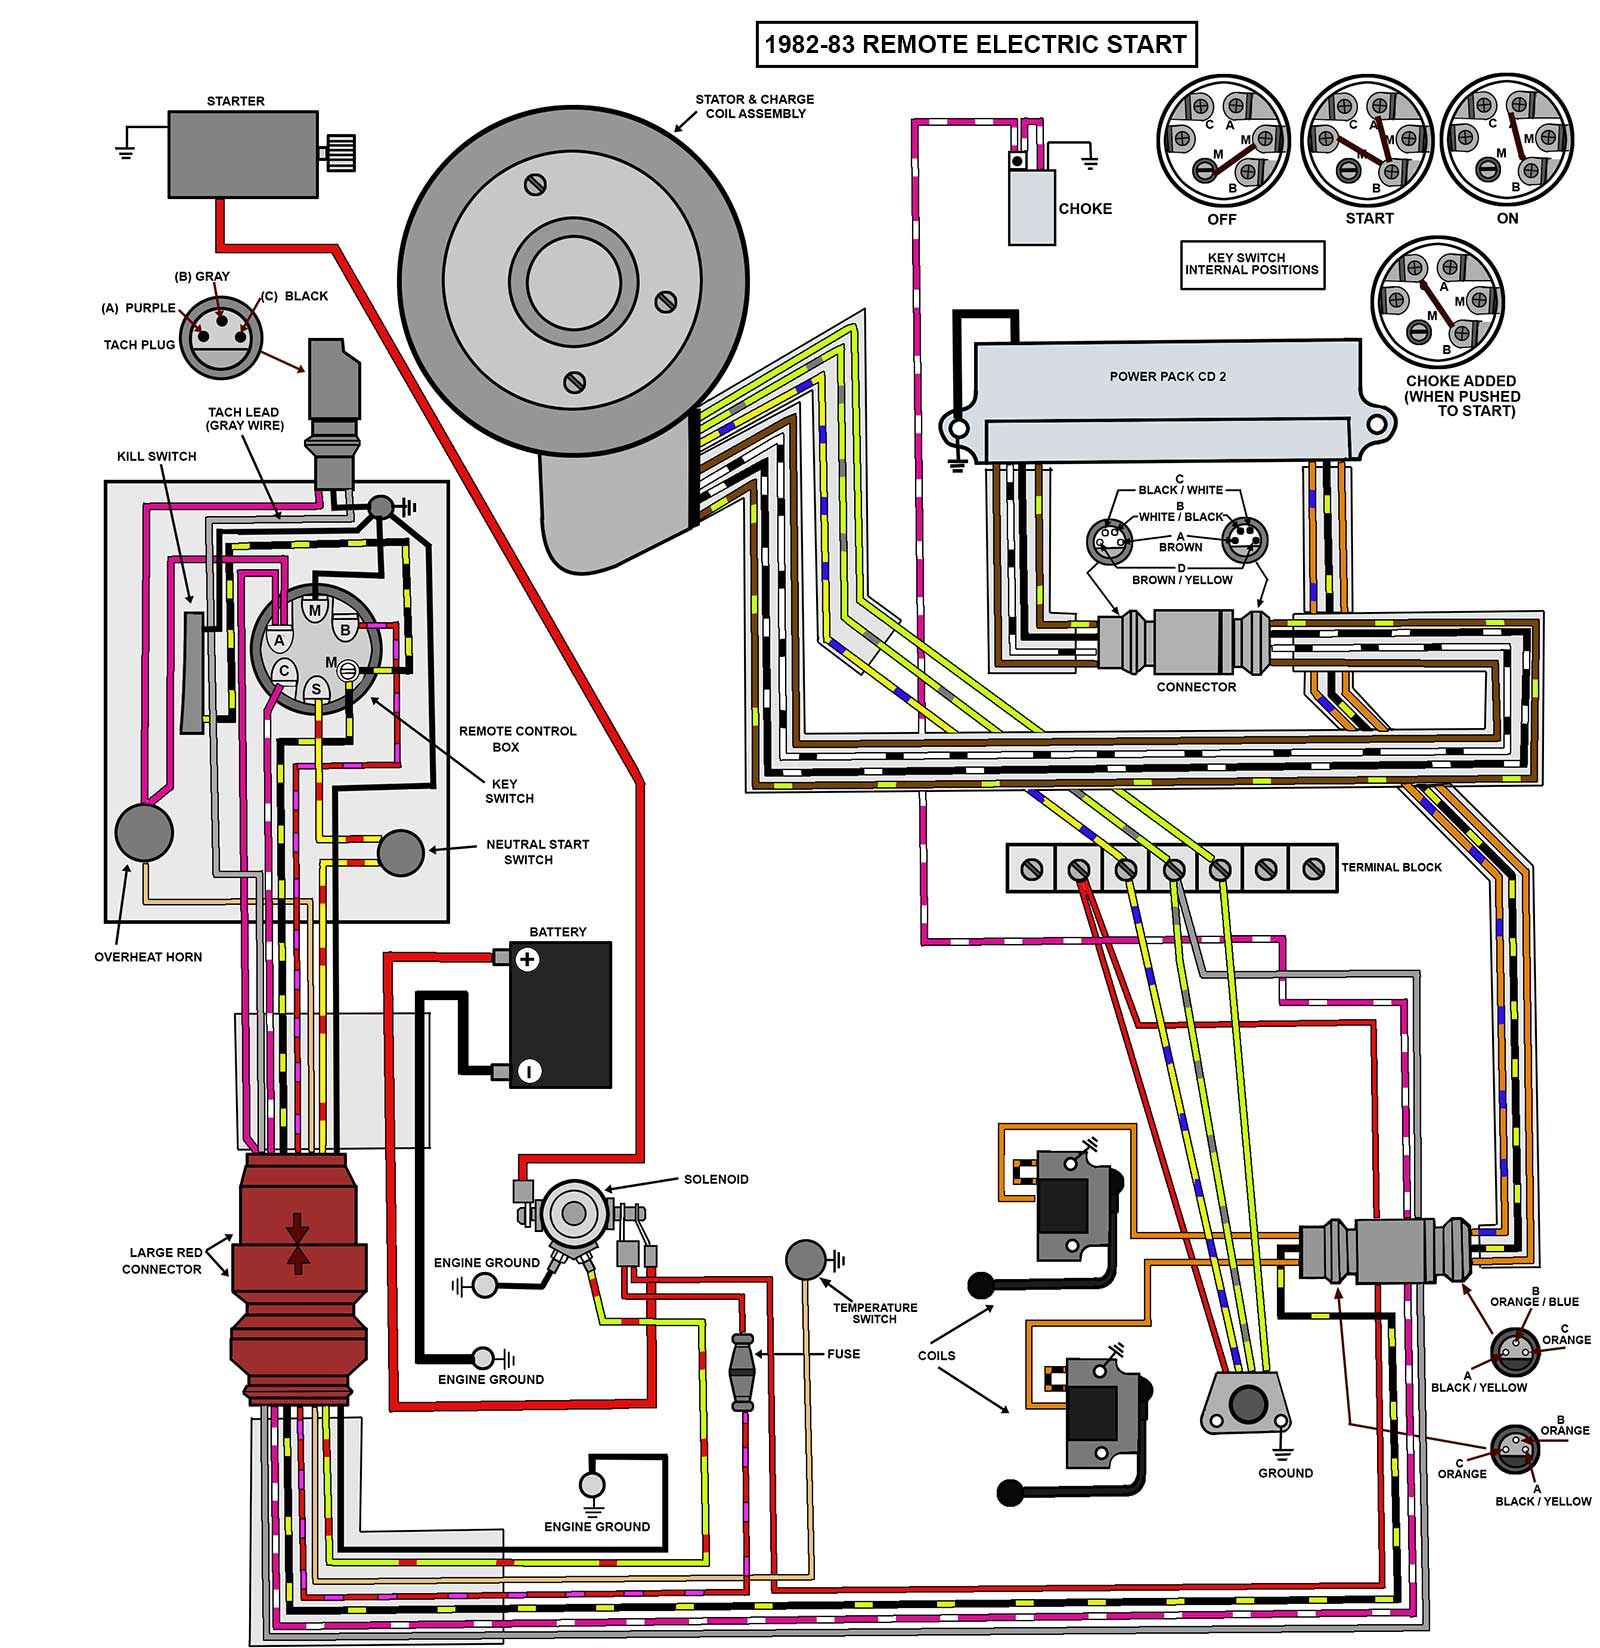 25_35_82 83_elec remote feather craft hookup diagrams wiring, steering, etc Fraitliner Diesel Wireing Harness at gsmx.co